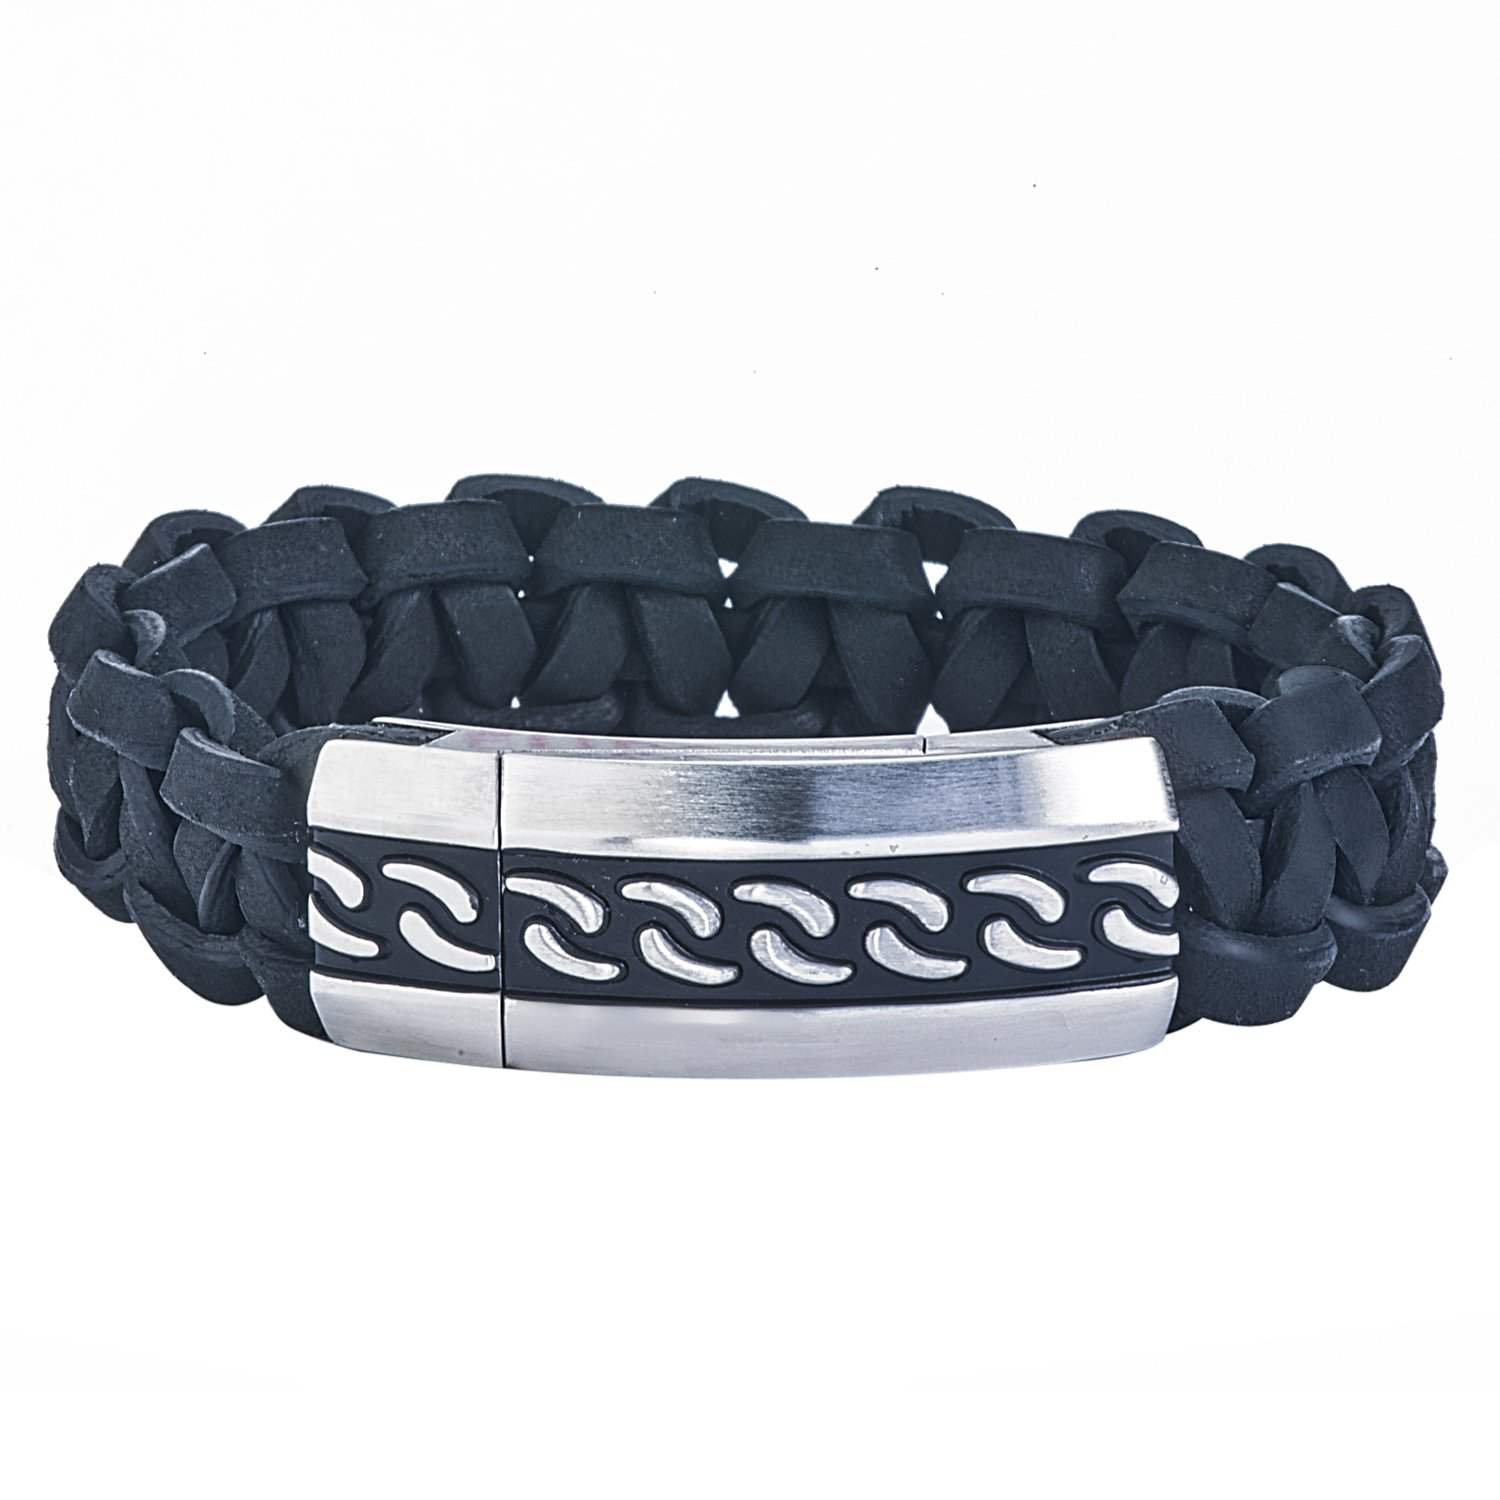 AX Jewelry Mens Stainless Steel Braided Leather Bracelet